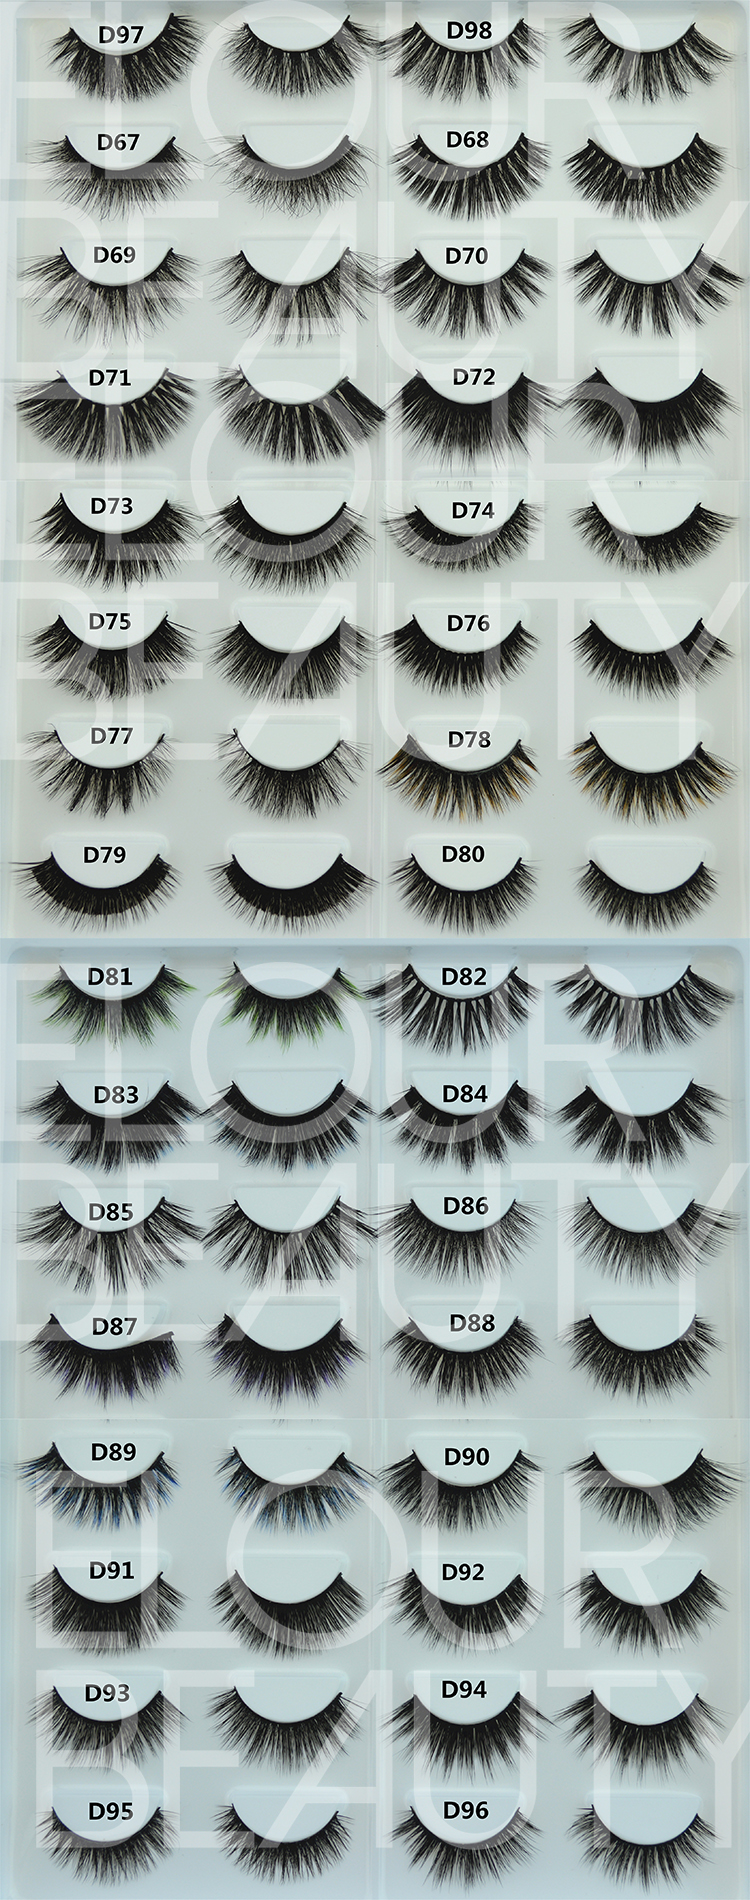 different 3d faux mink lashes wholesale.jpg